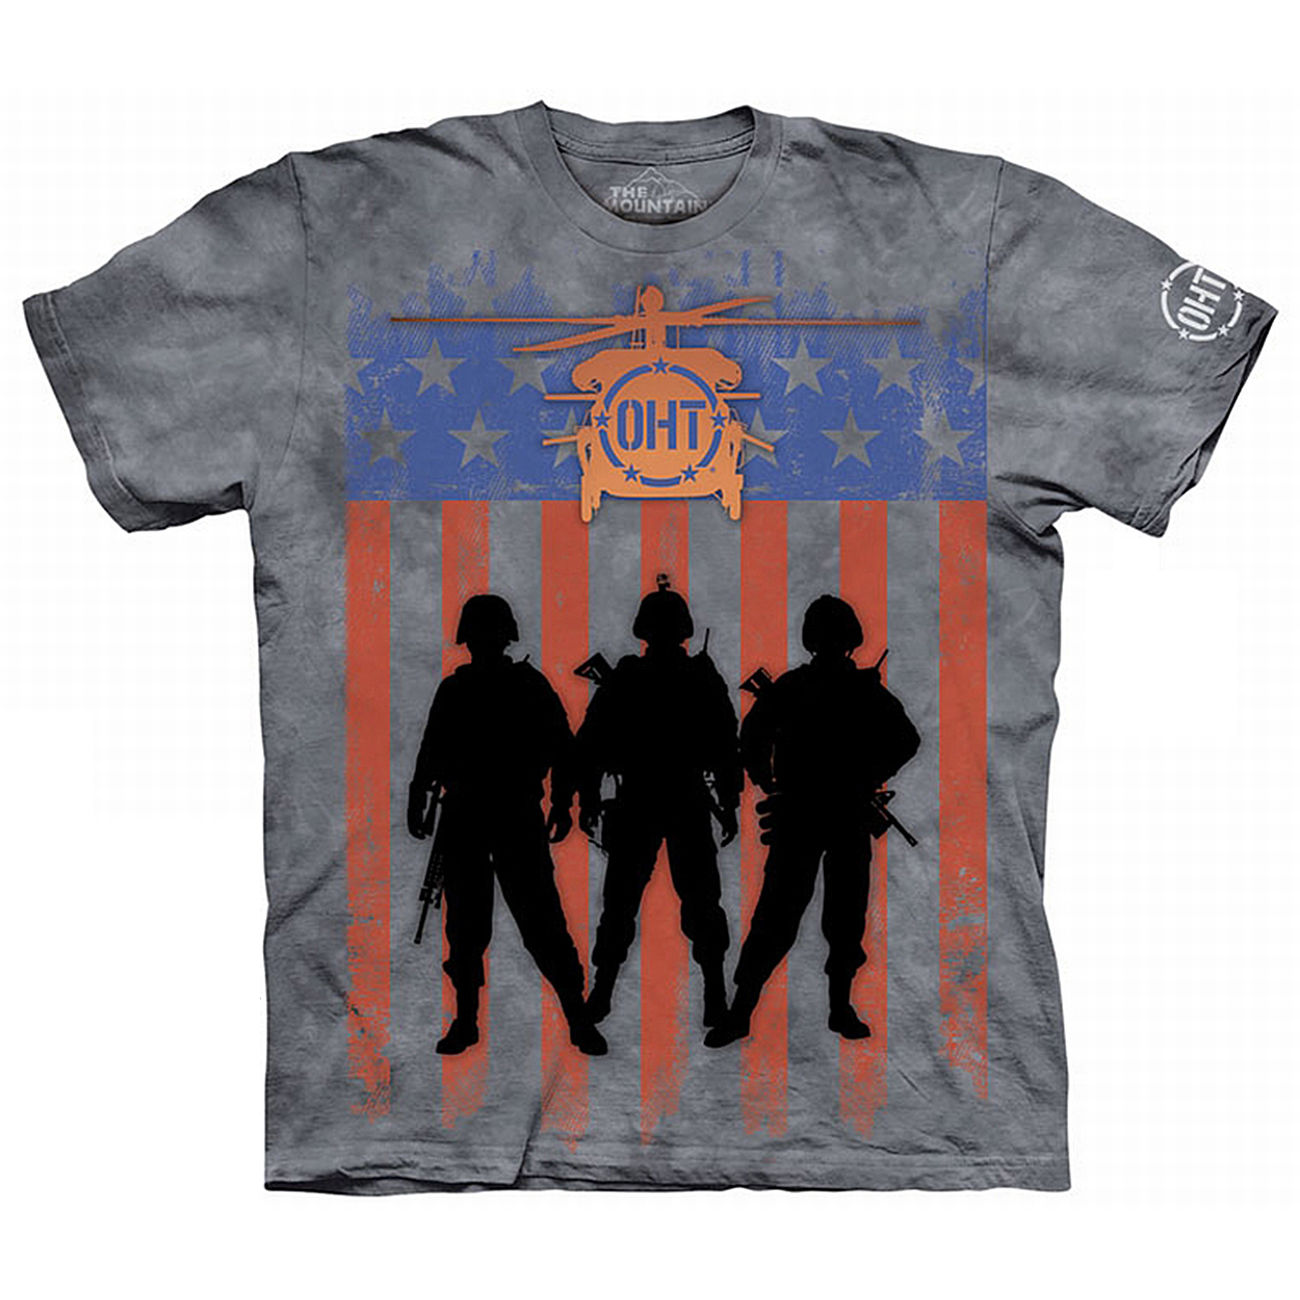 The Mountain T-Shirt Three Troops Oht-Hero 0